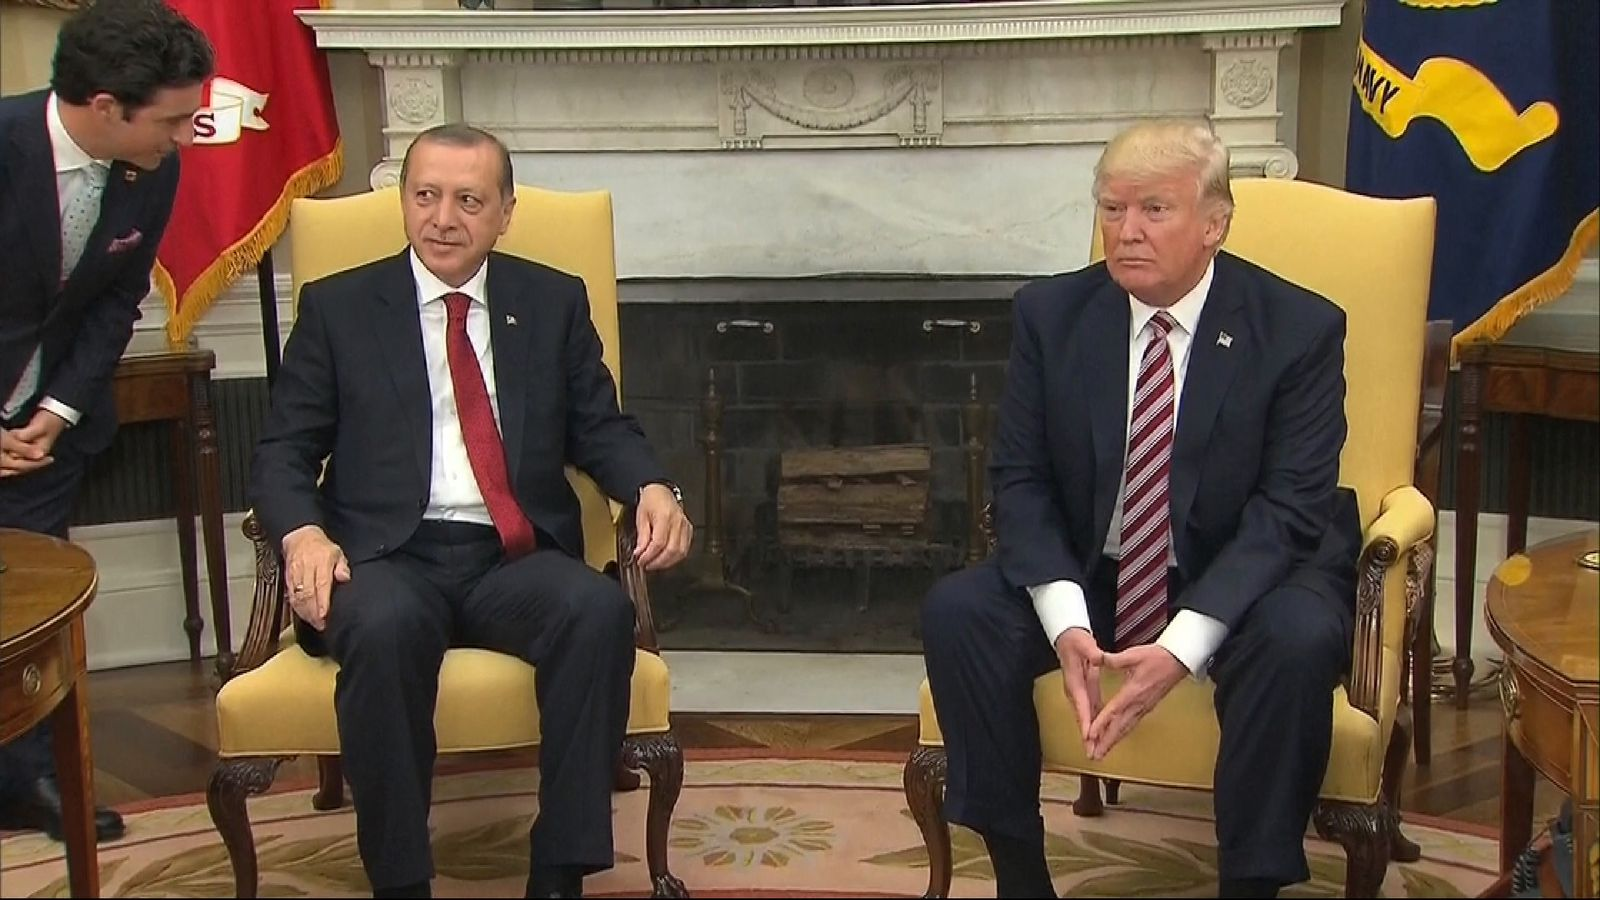 Donald Trump blanks questions from journalists about classified information and Russia while the President of Turkey looks on